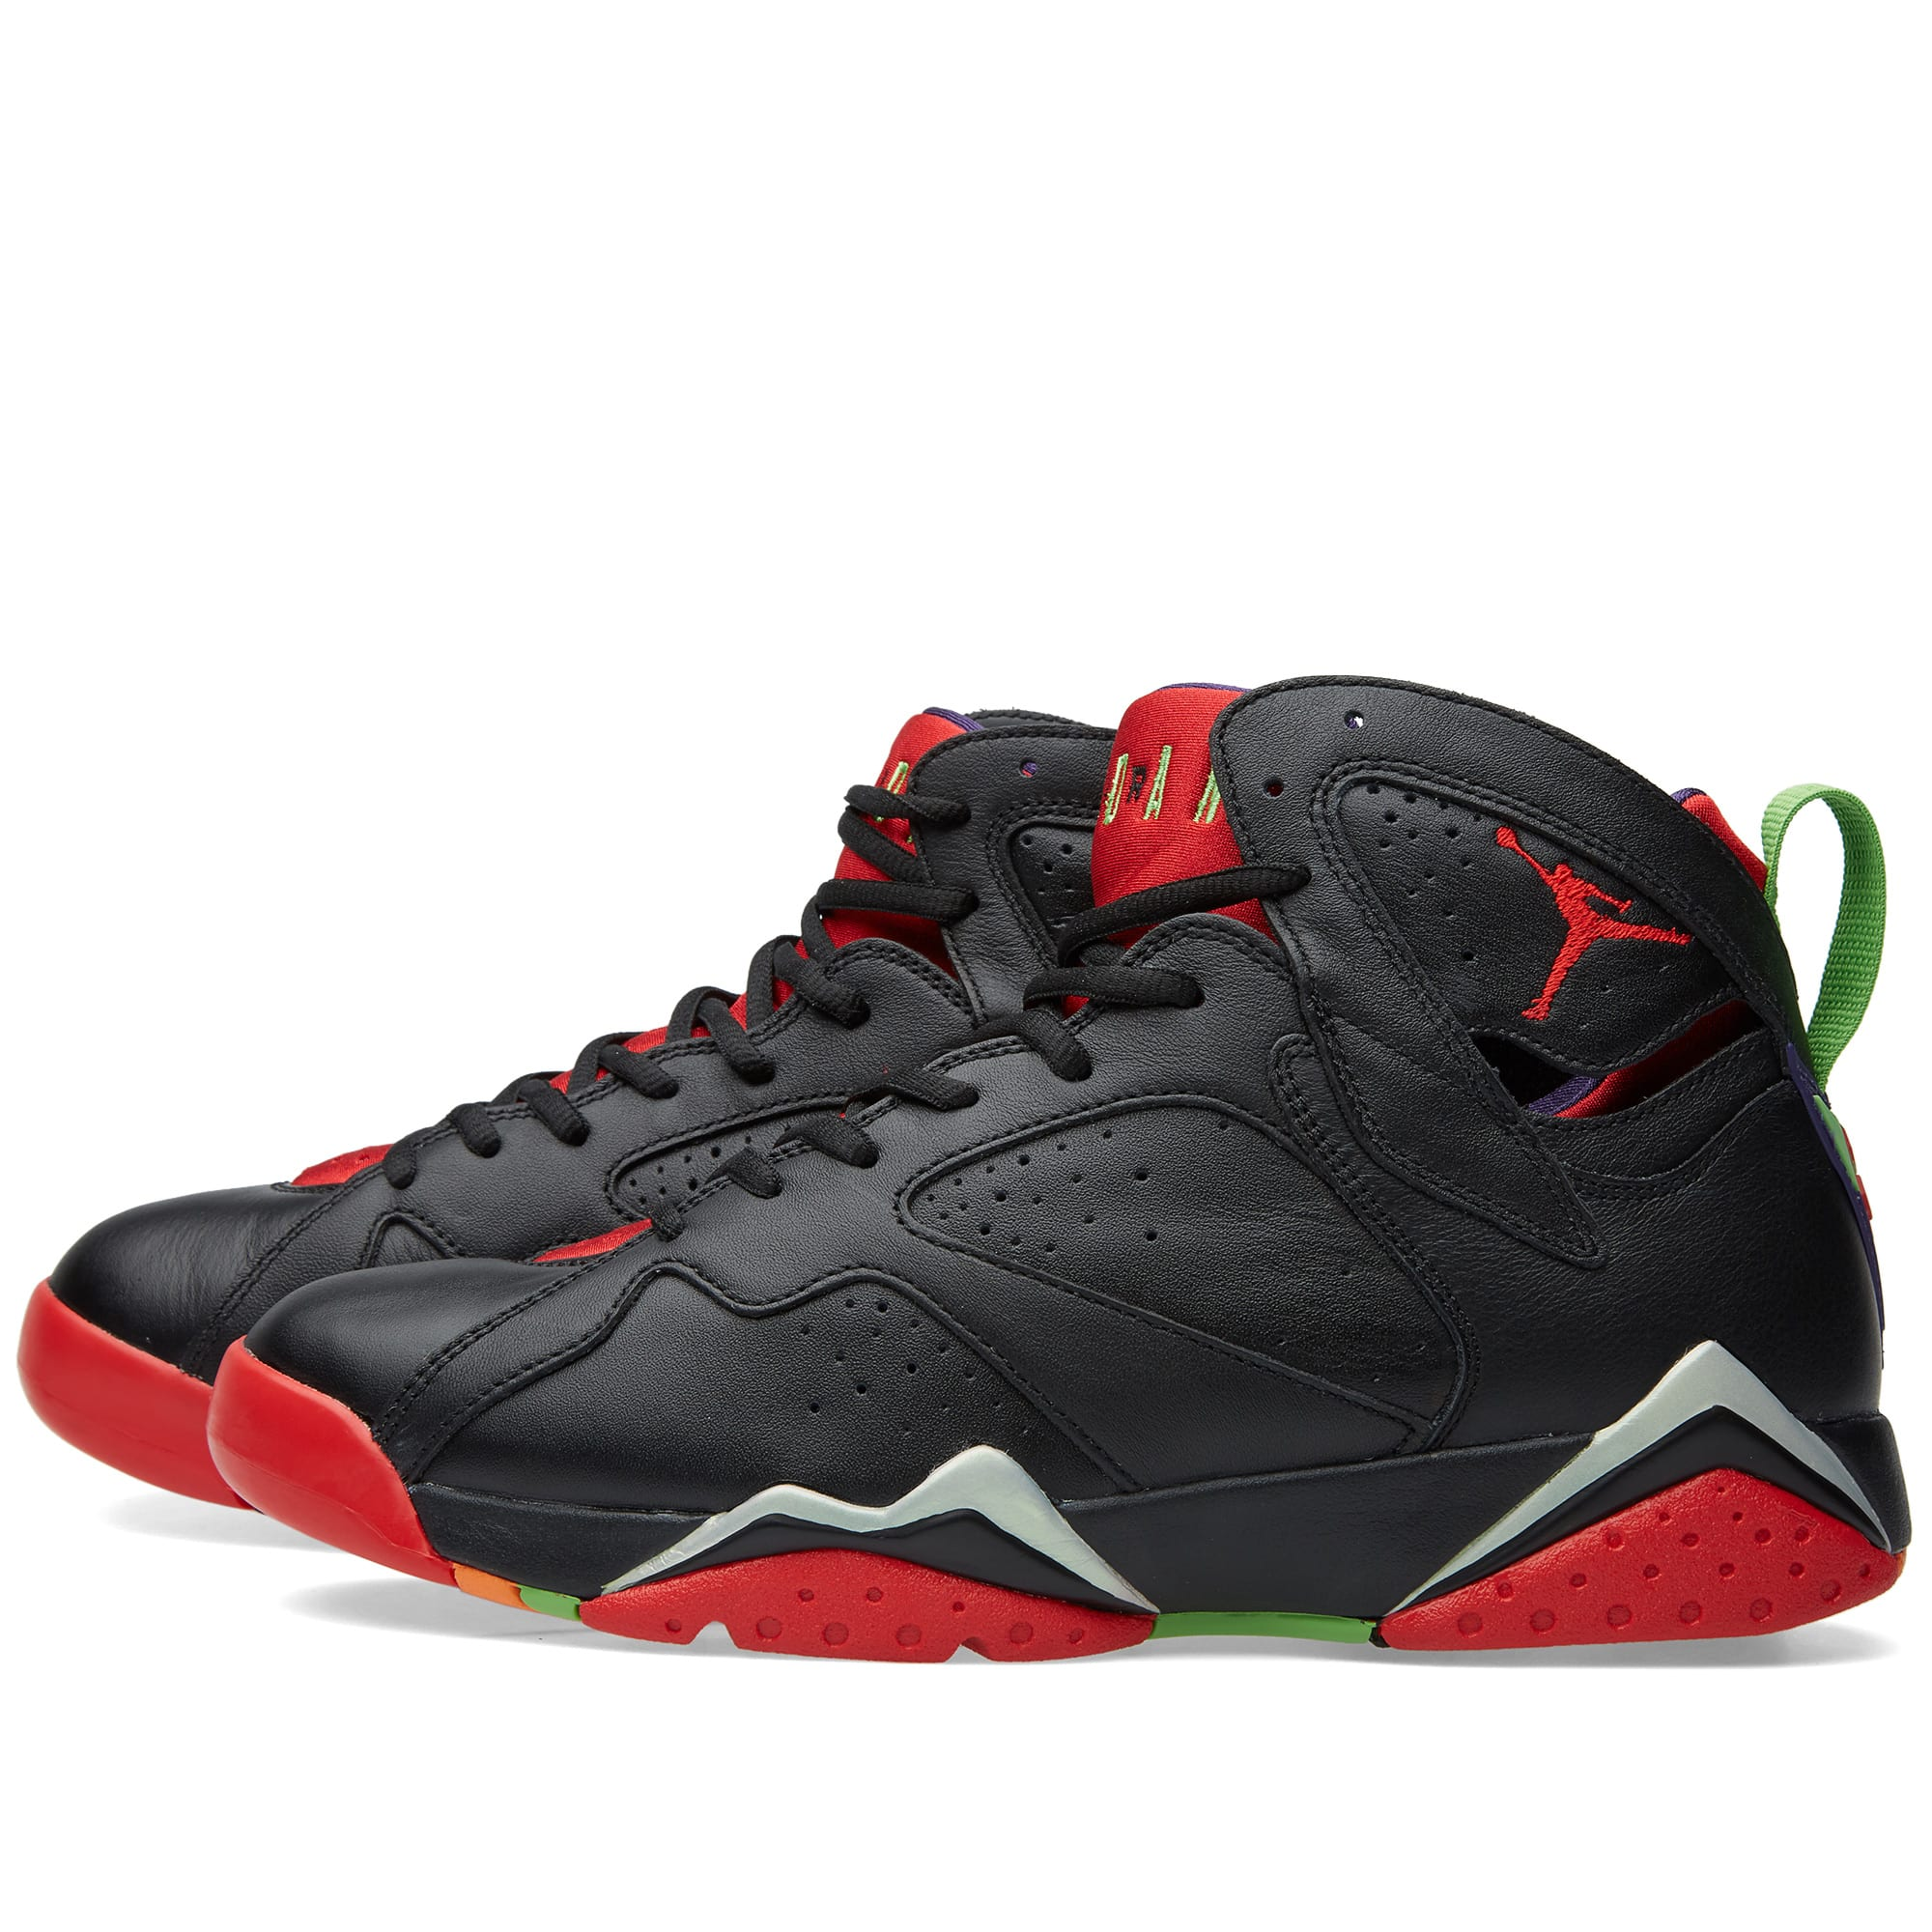 Nike Air Jordan VII Retro 'Marvin The Martian' (Black ... Nike Air Jordan 7 Retro